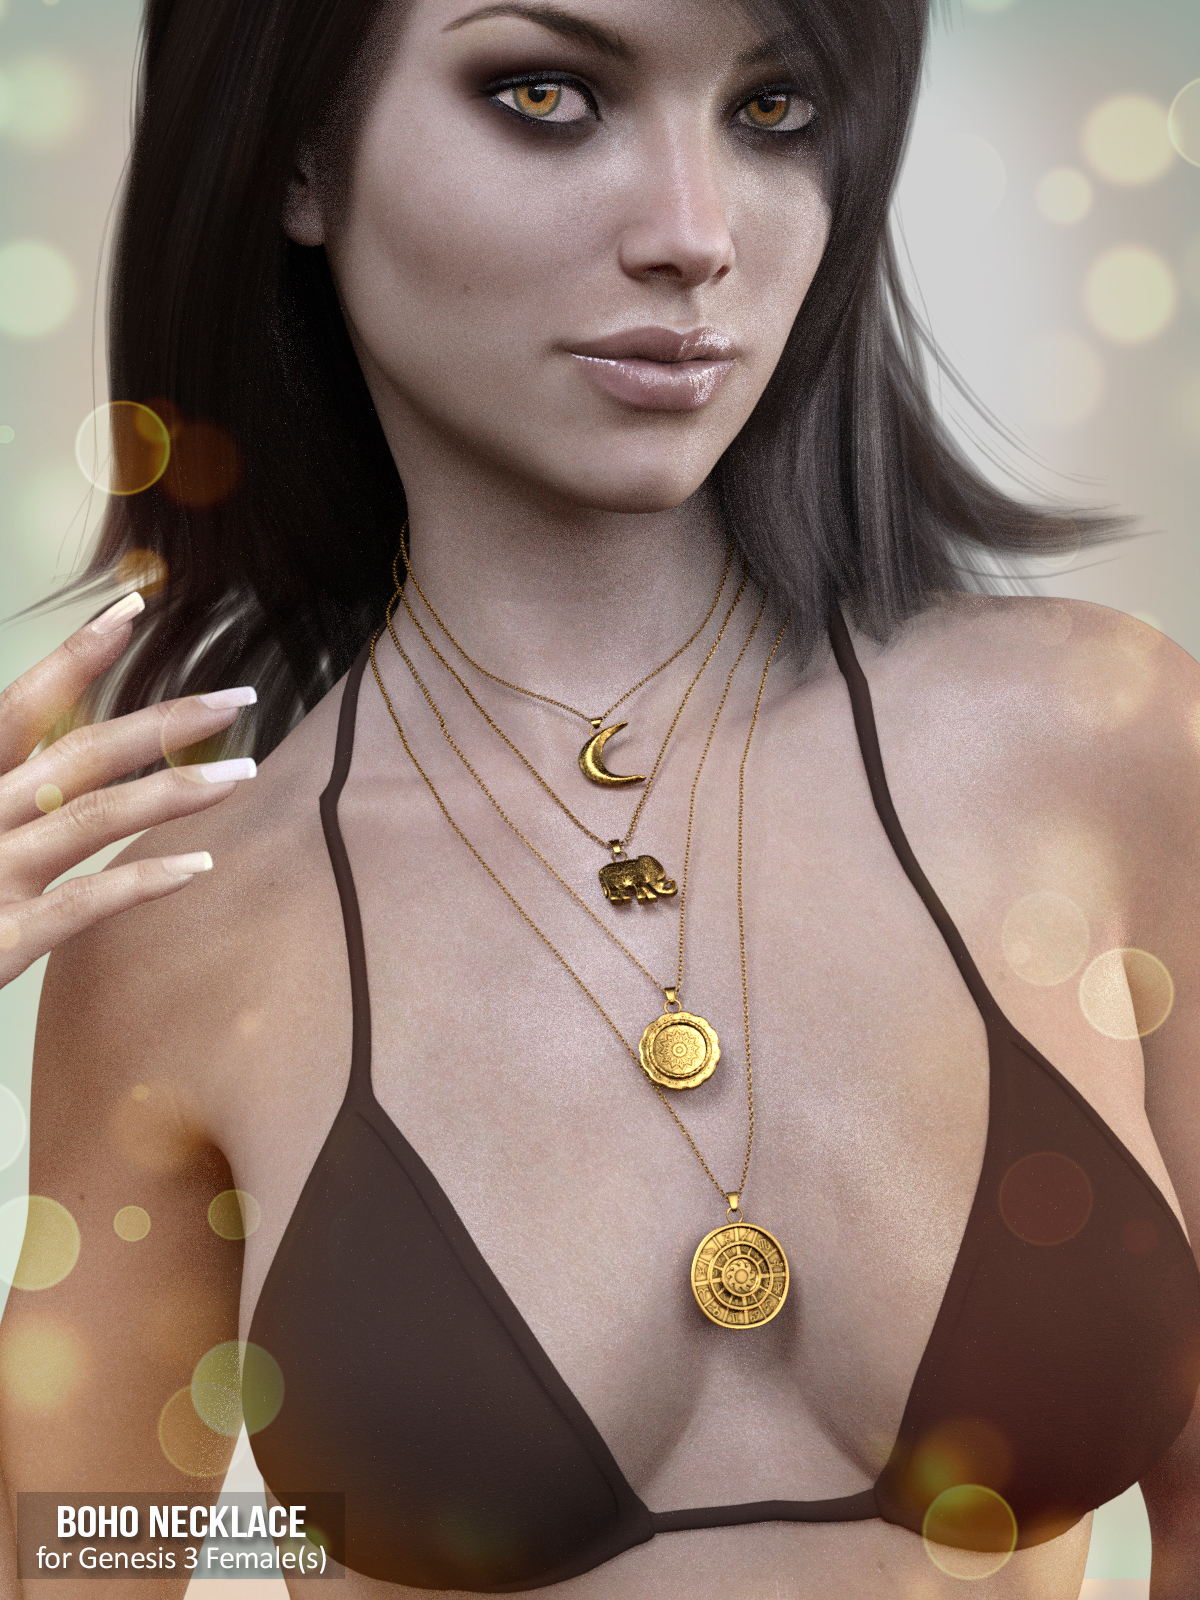 X-Fashion Boho Necklace for Genesis 3 Female(s)